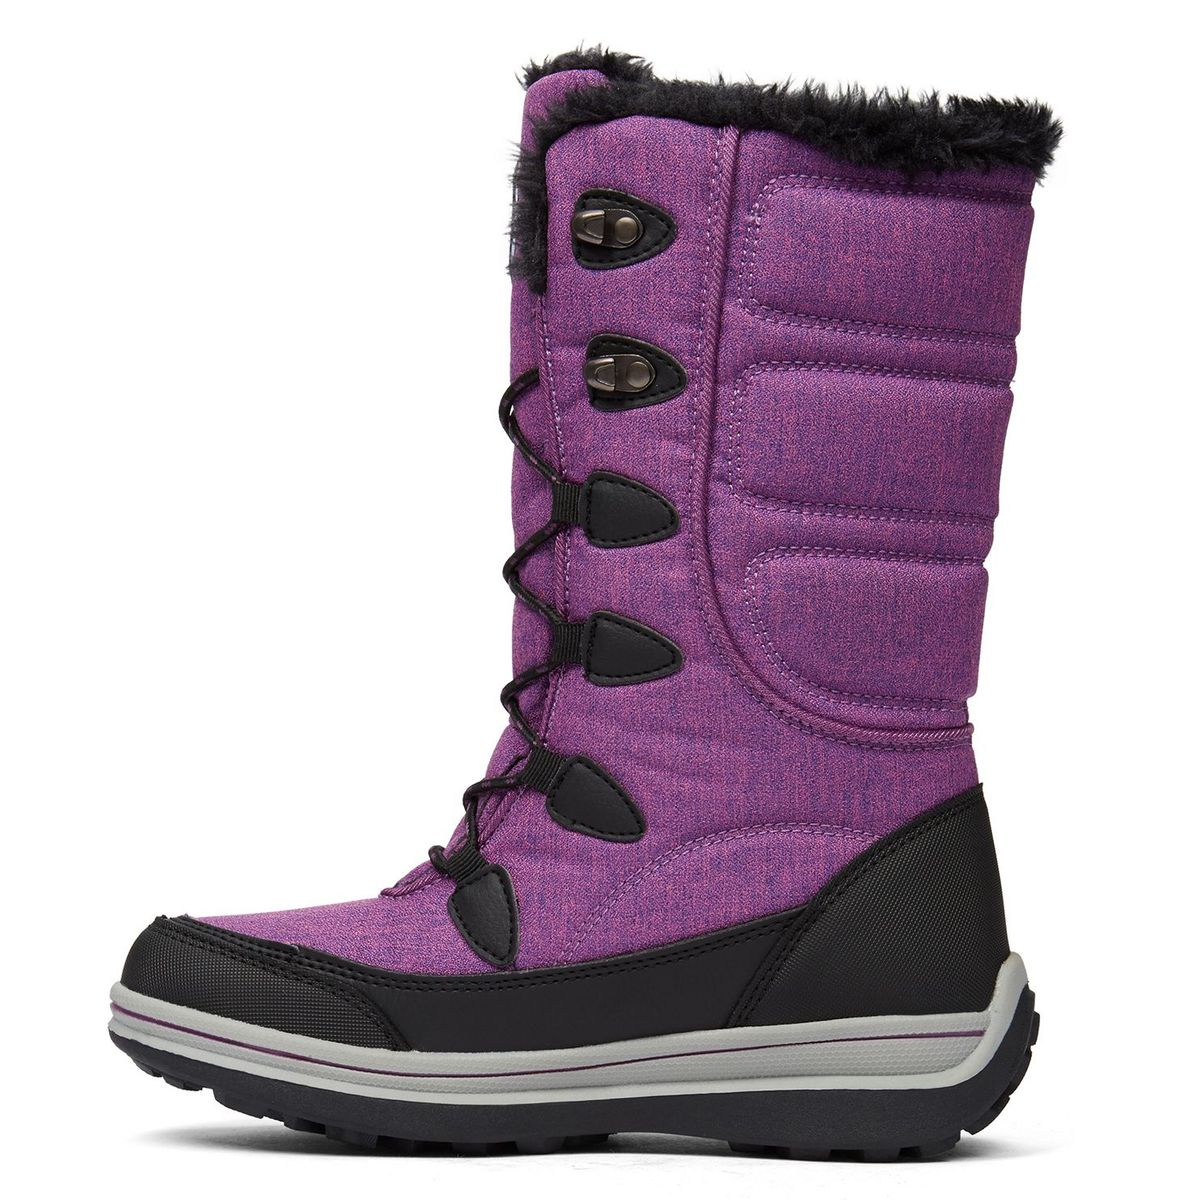 Olaonia Bottes d'hiverGlobo Femmes Canada Violet CoerdxB